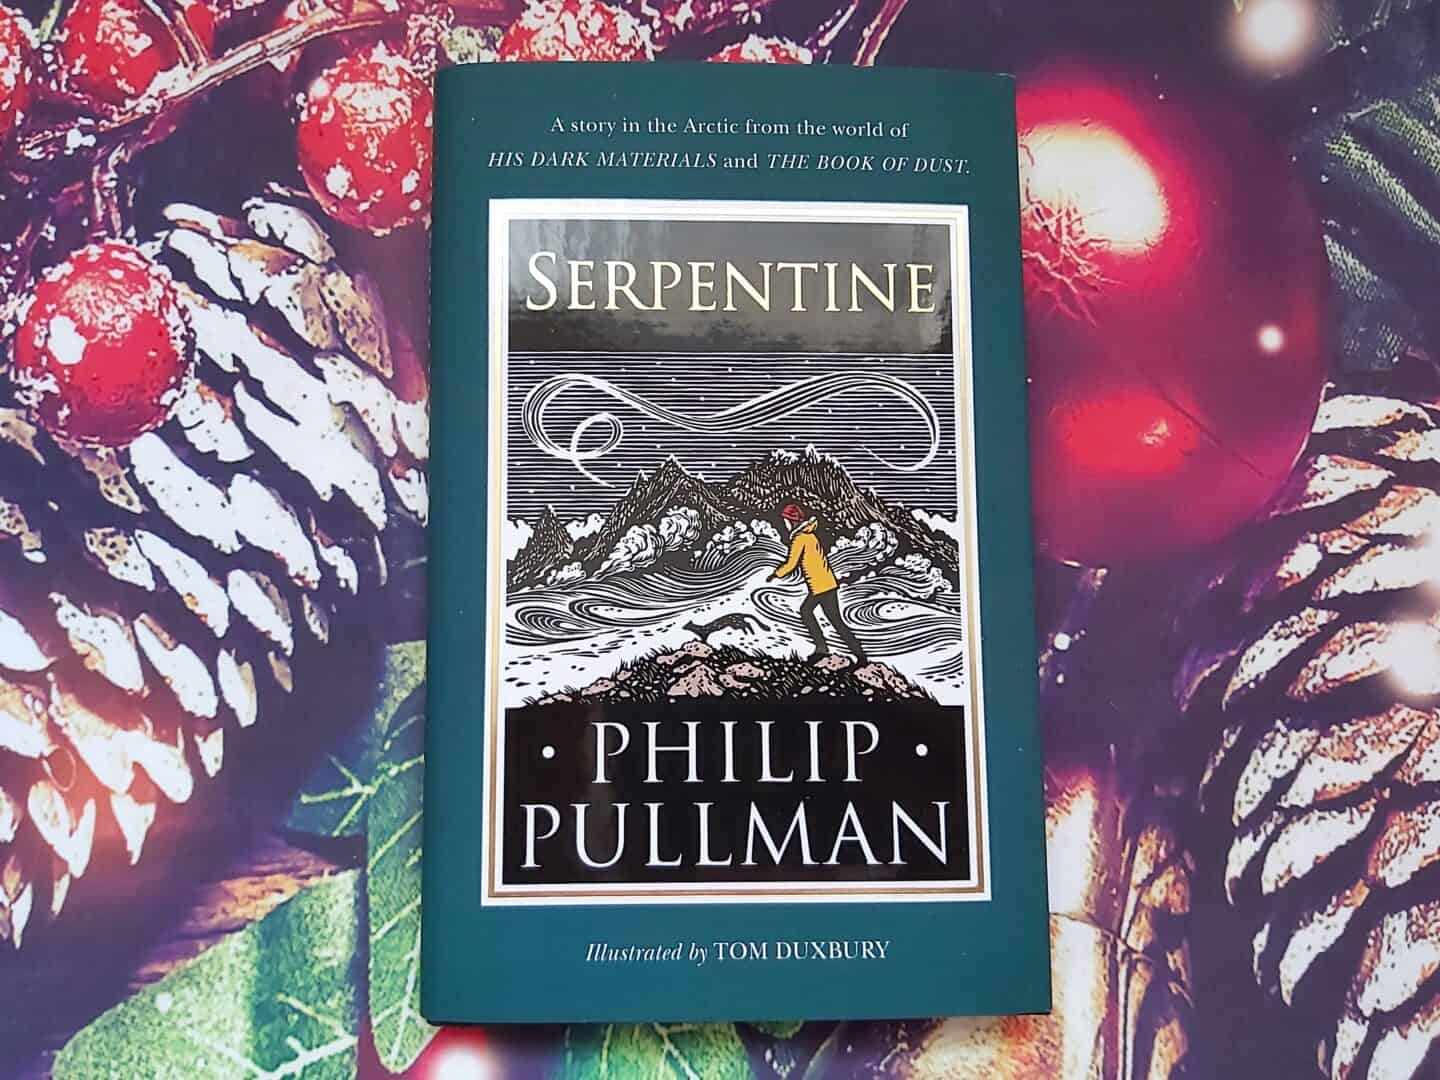 Serpentine by Phillip Pullman small book against Christmas background